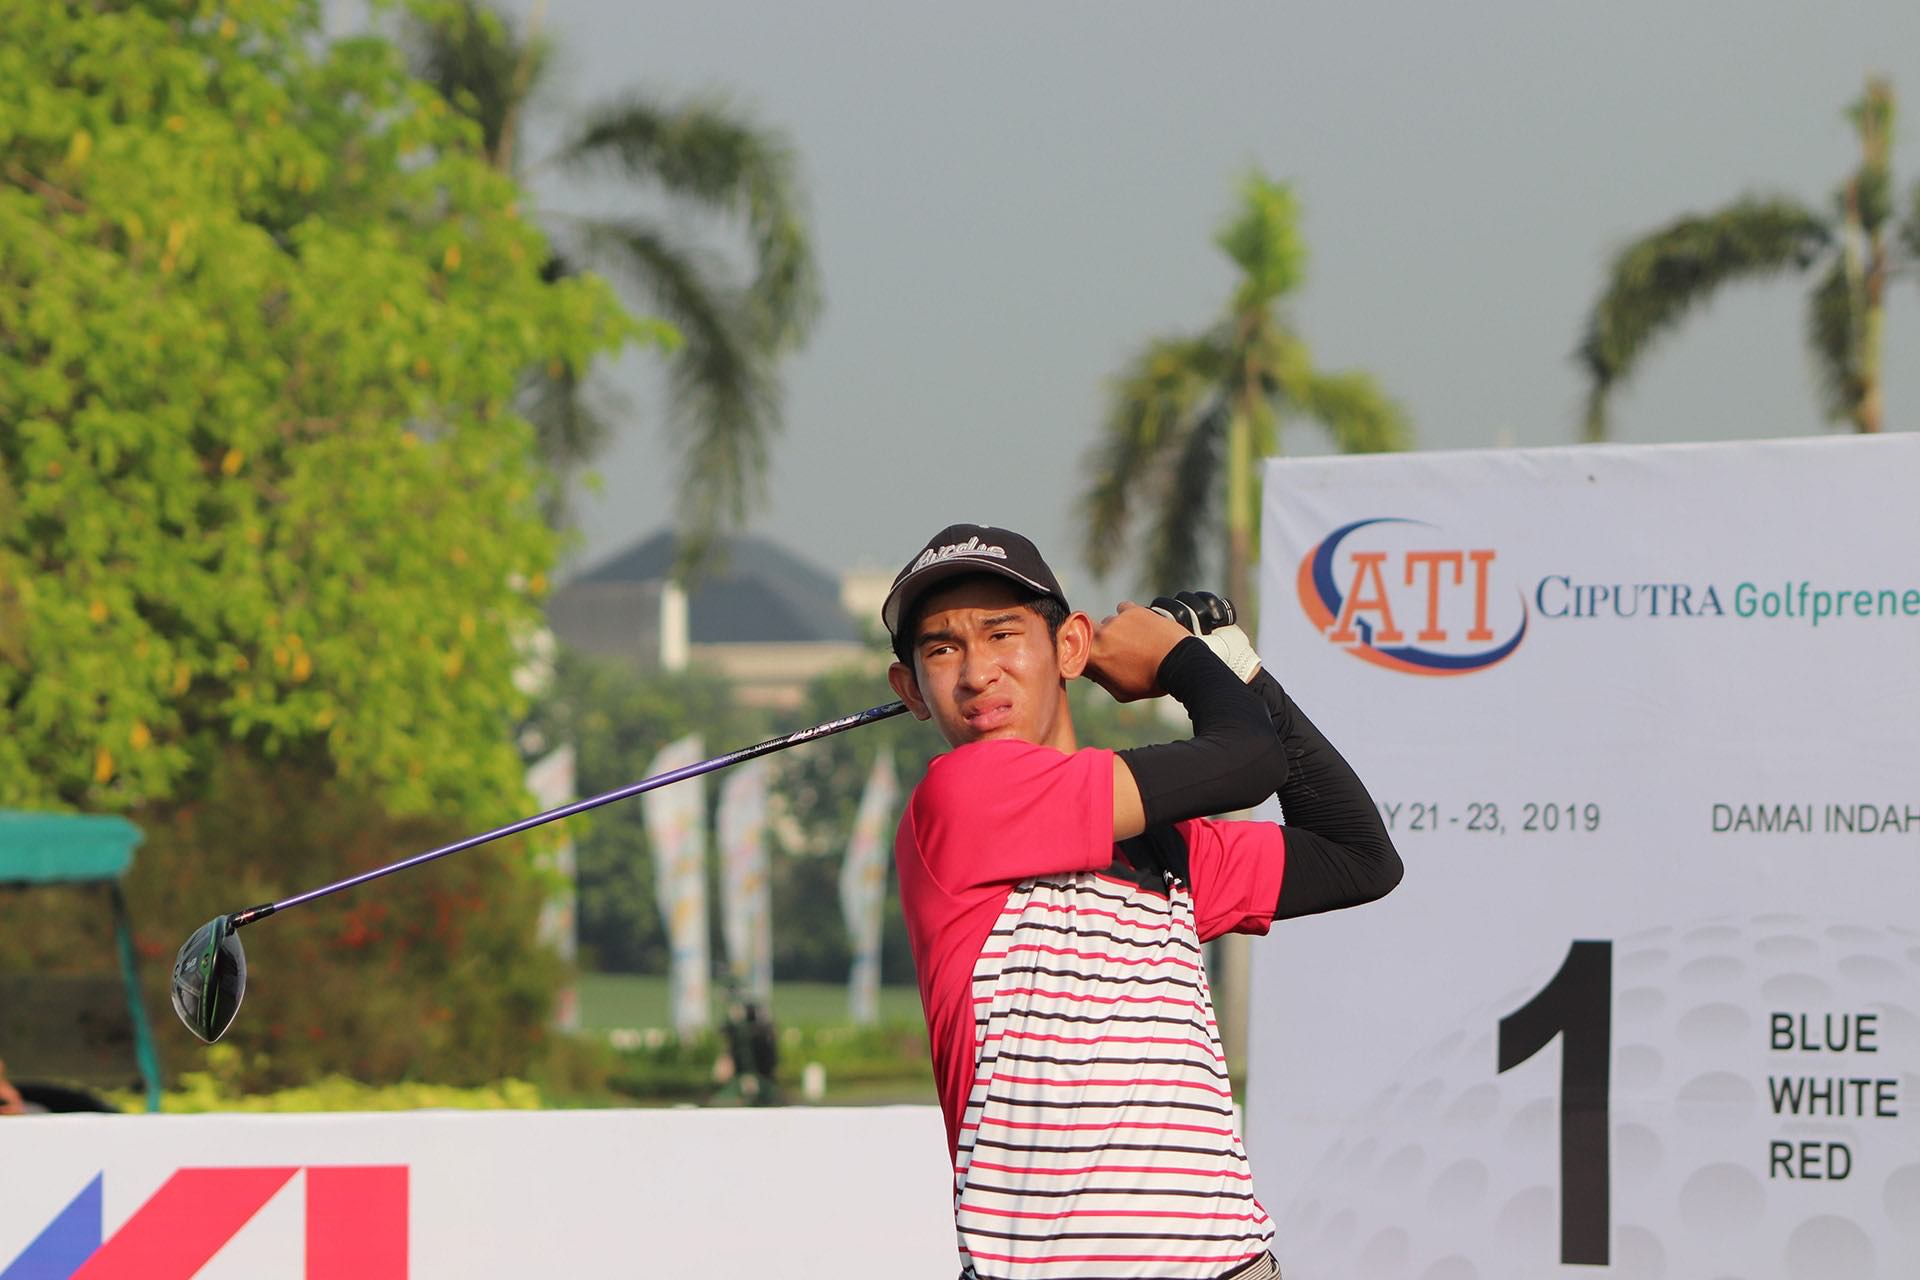 Gabriel Hansel Hari First Team Junior All-Asia Swing at first tee of JGTA Ciputra